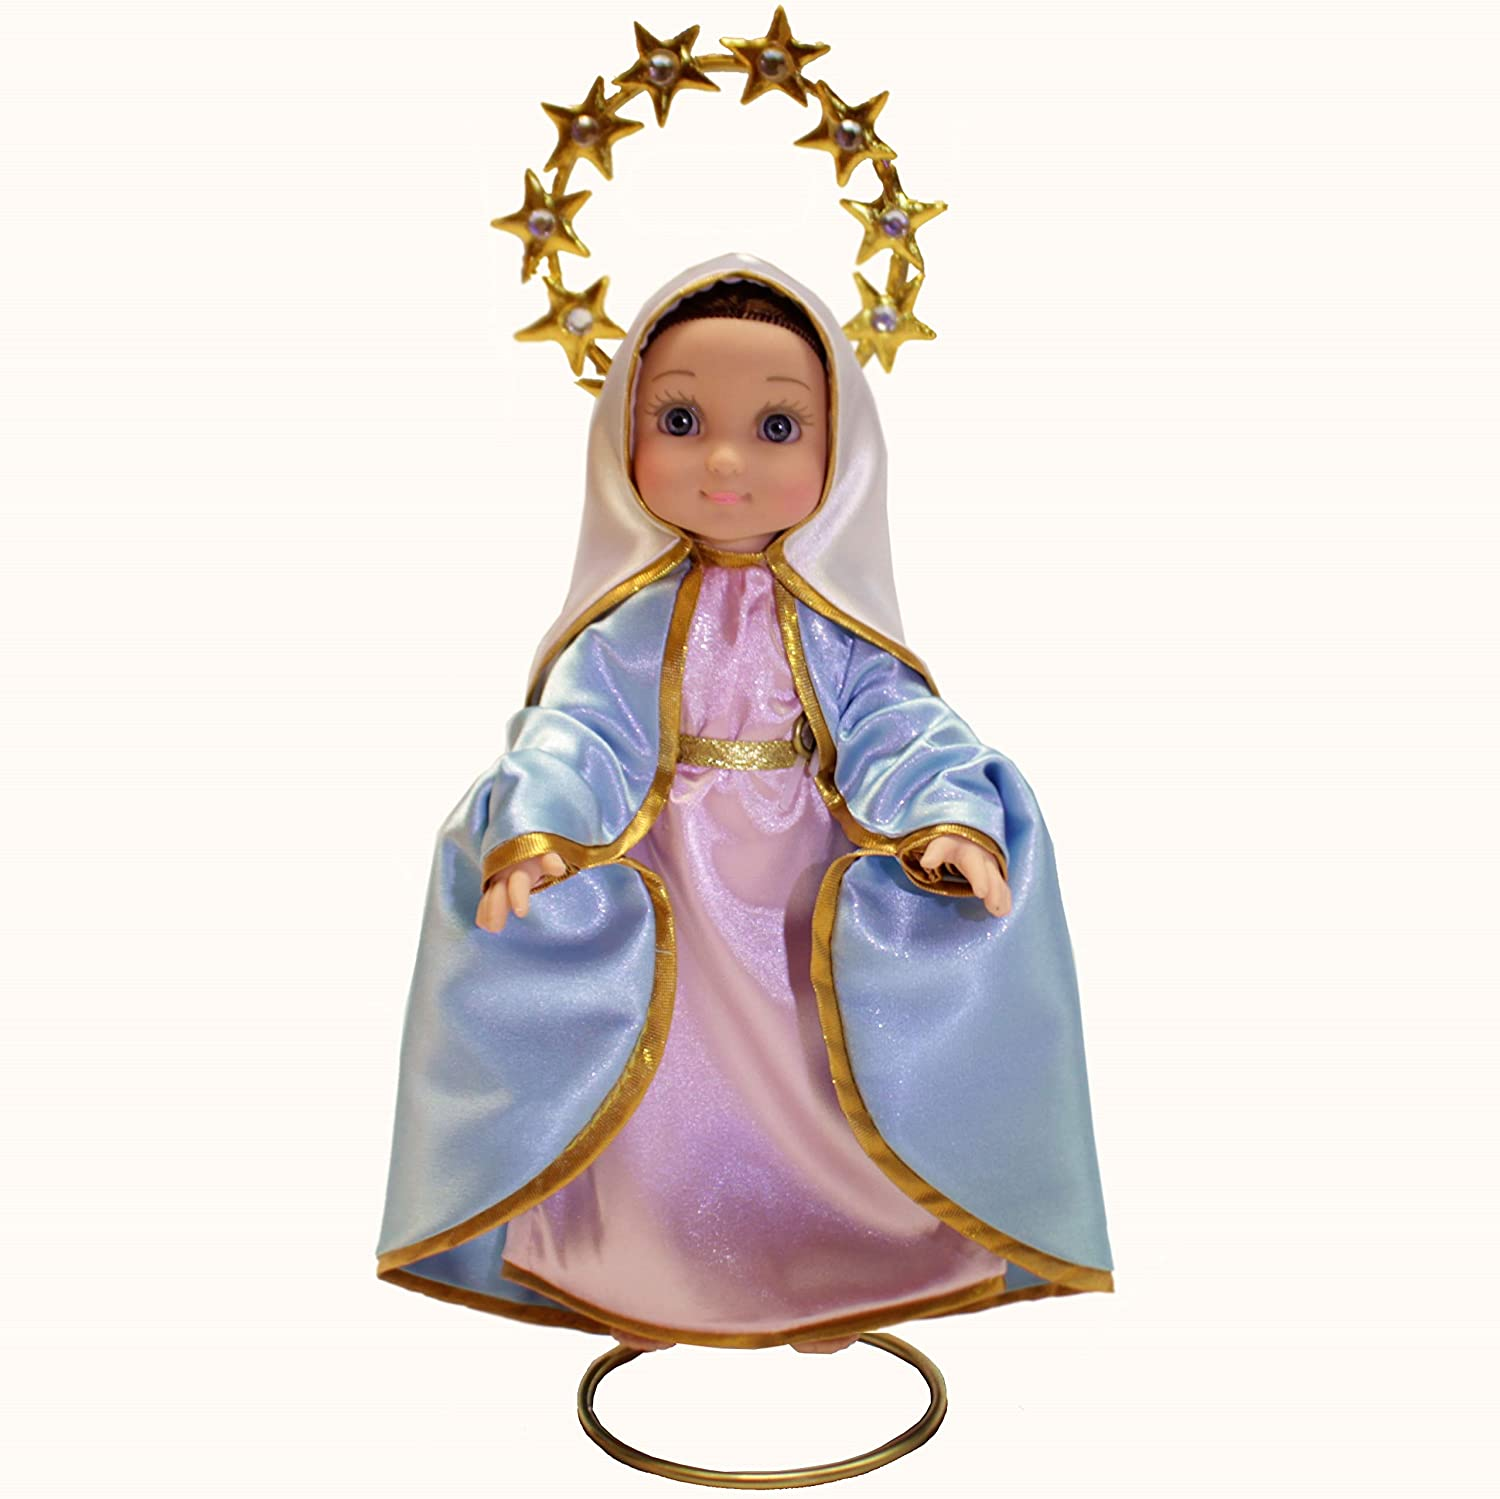 MARIA CONTIGO / Our Lady Queen of Peace 10